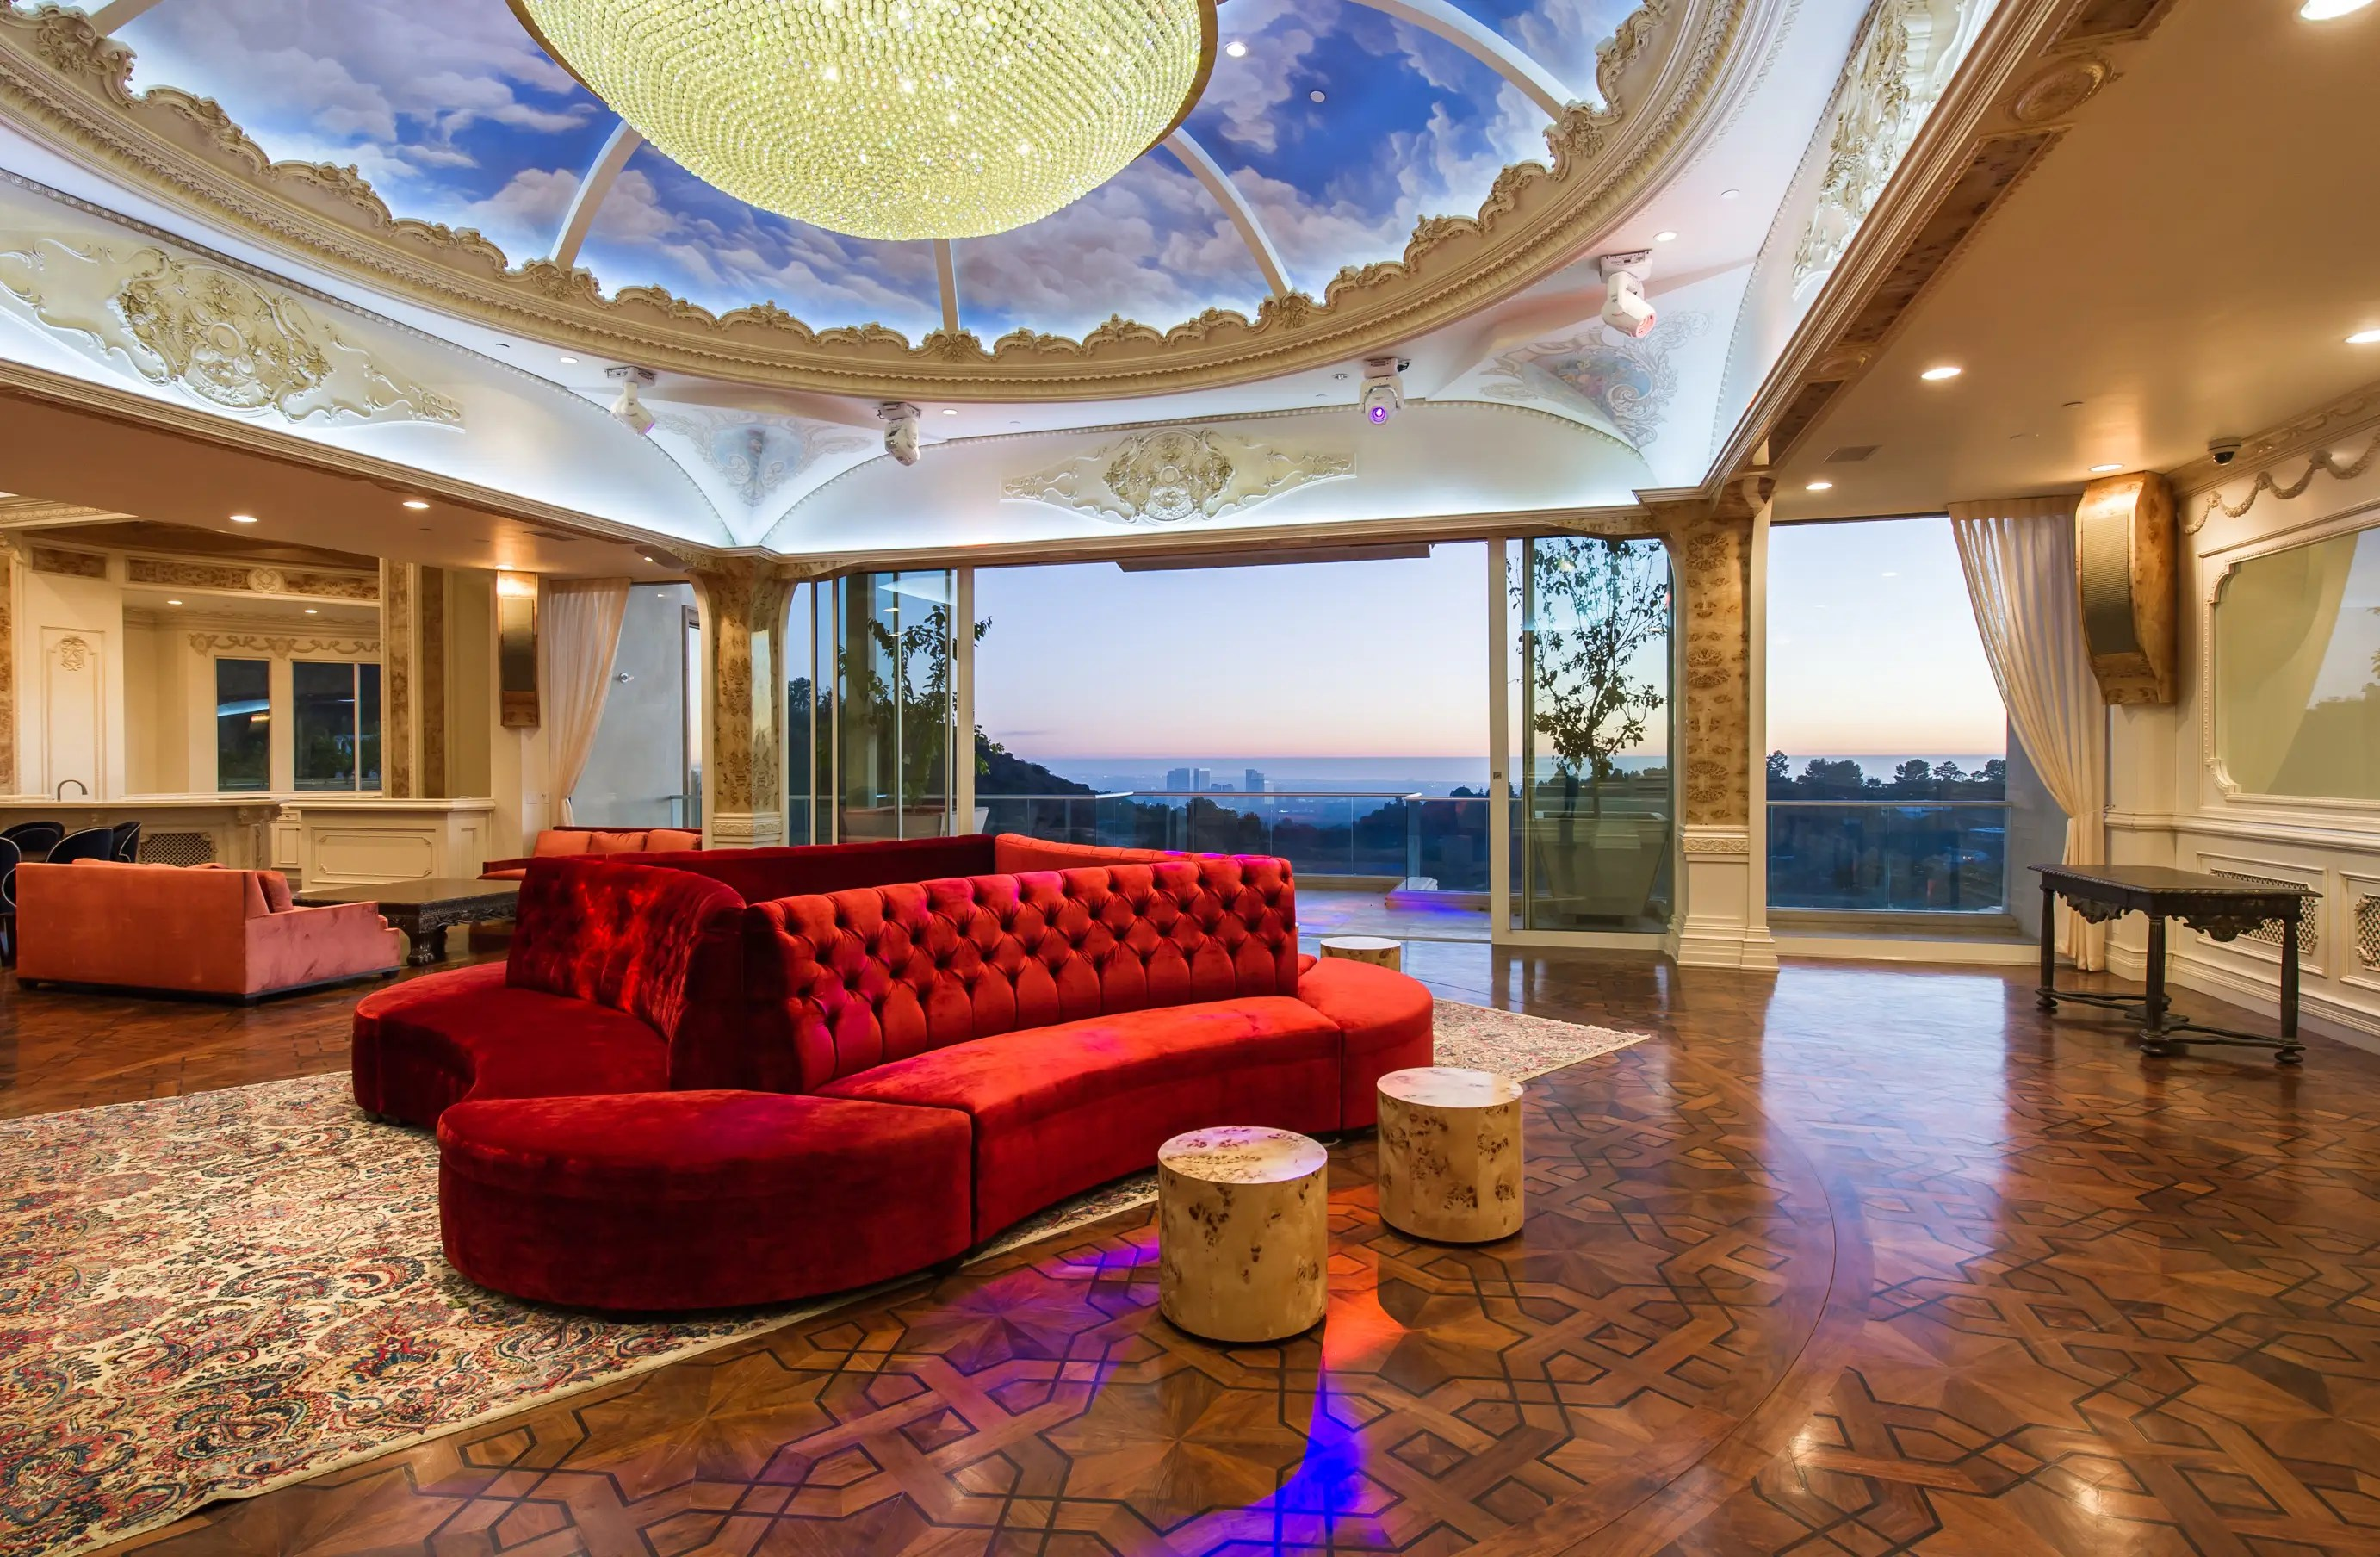 With 53,000 square feet of space, this mansion is truly gigantic.